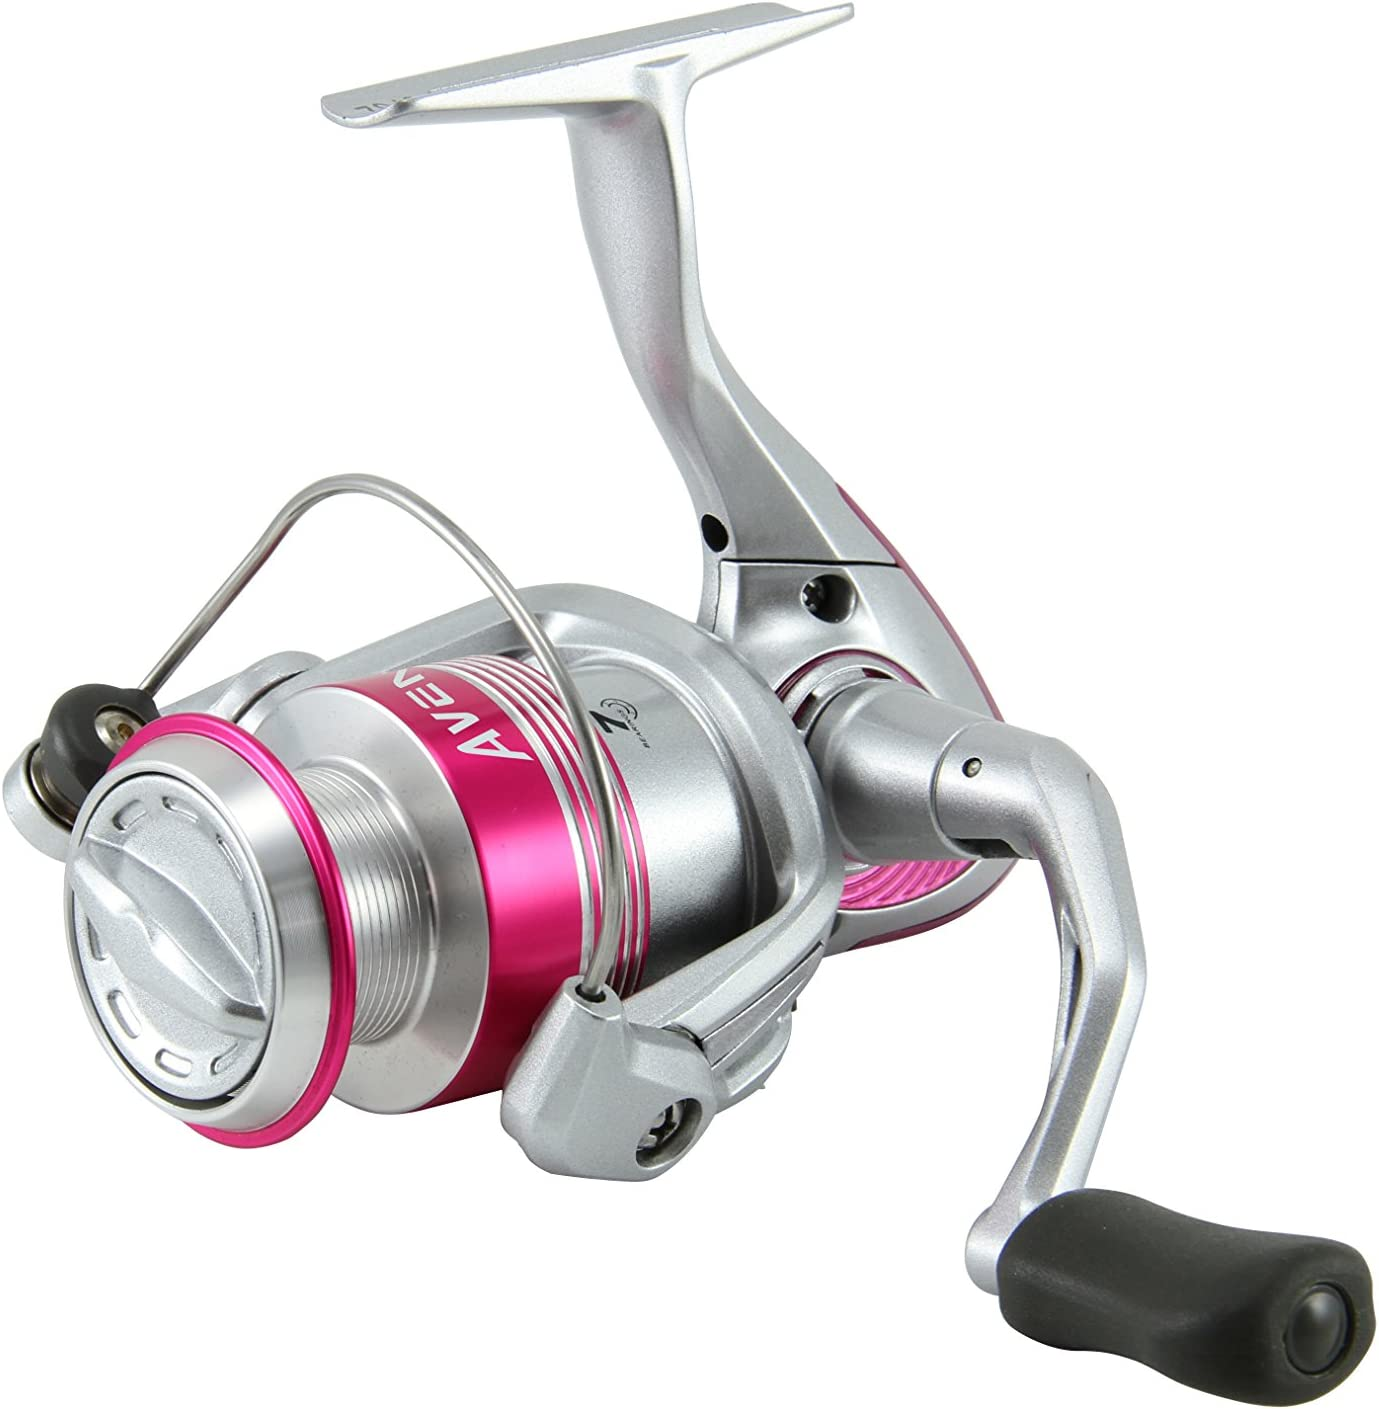 Okuma Avenger Ladies Edition Lightweight Pink Spinning Reel